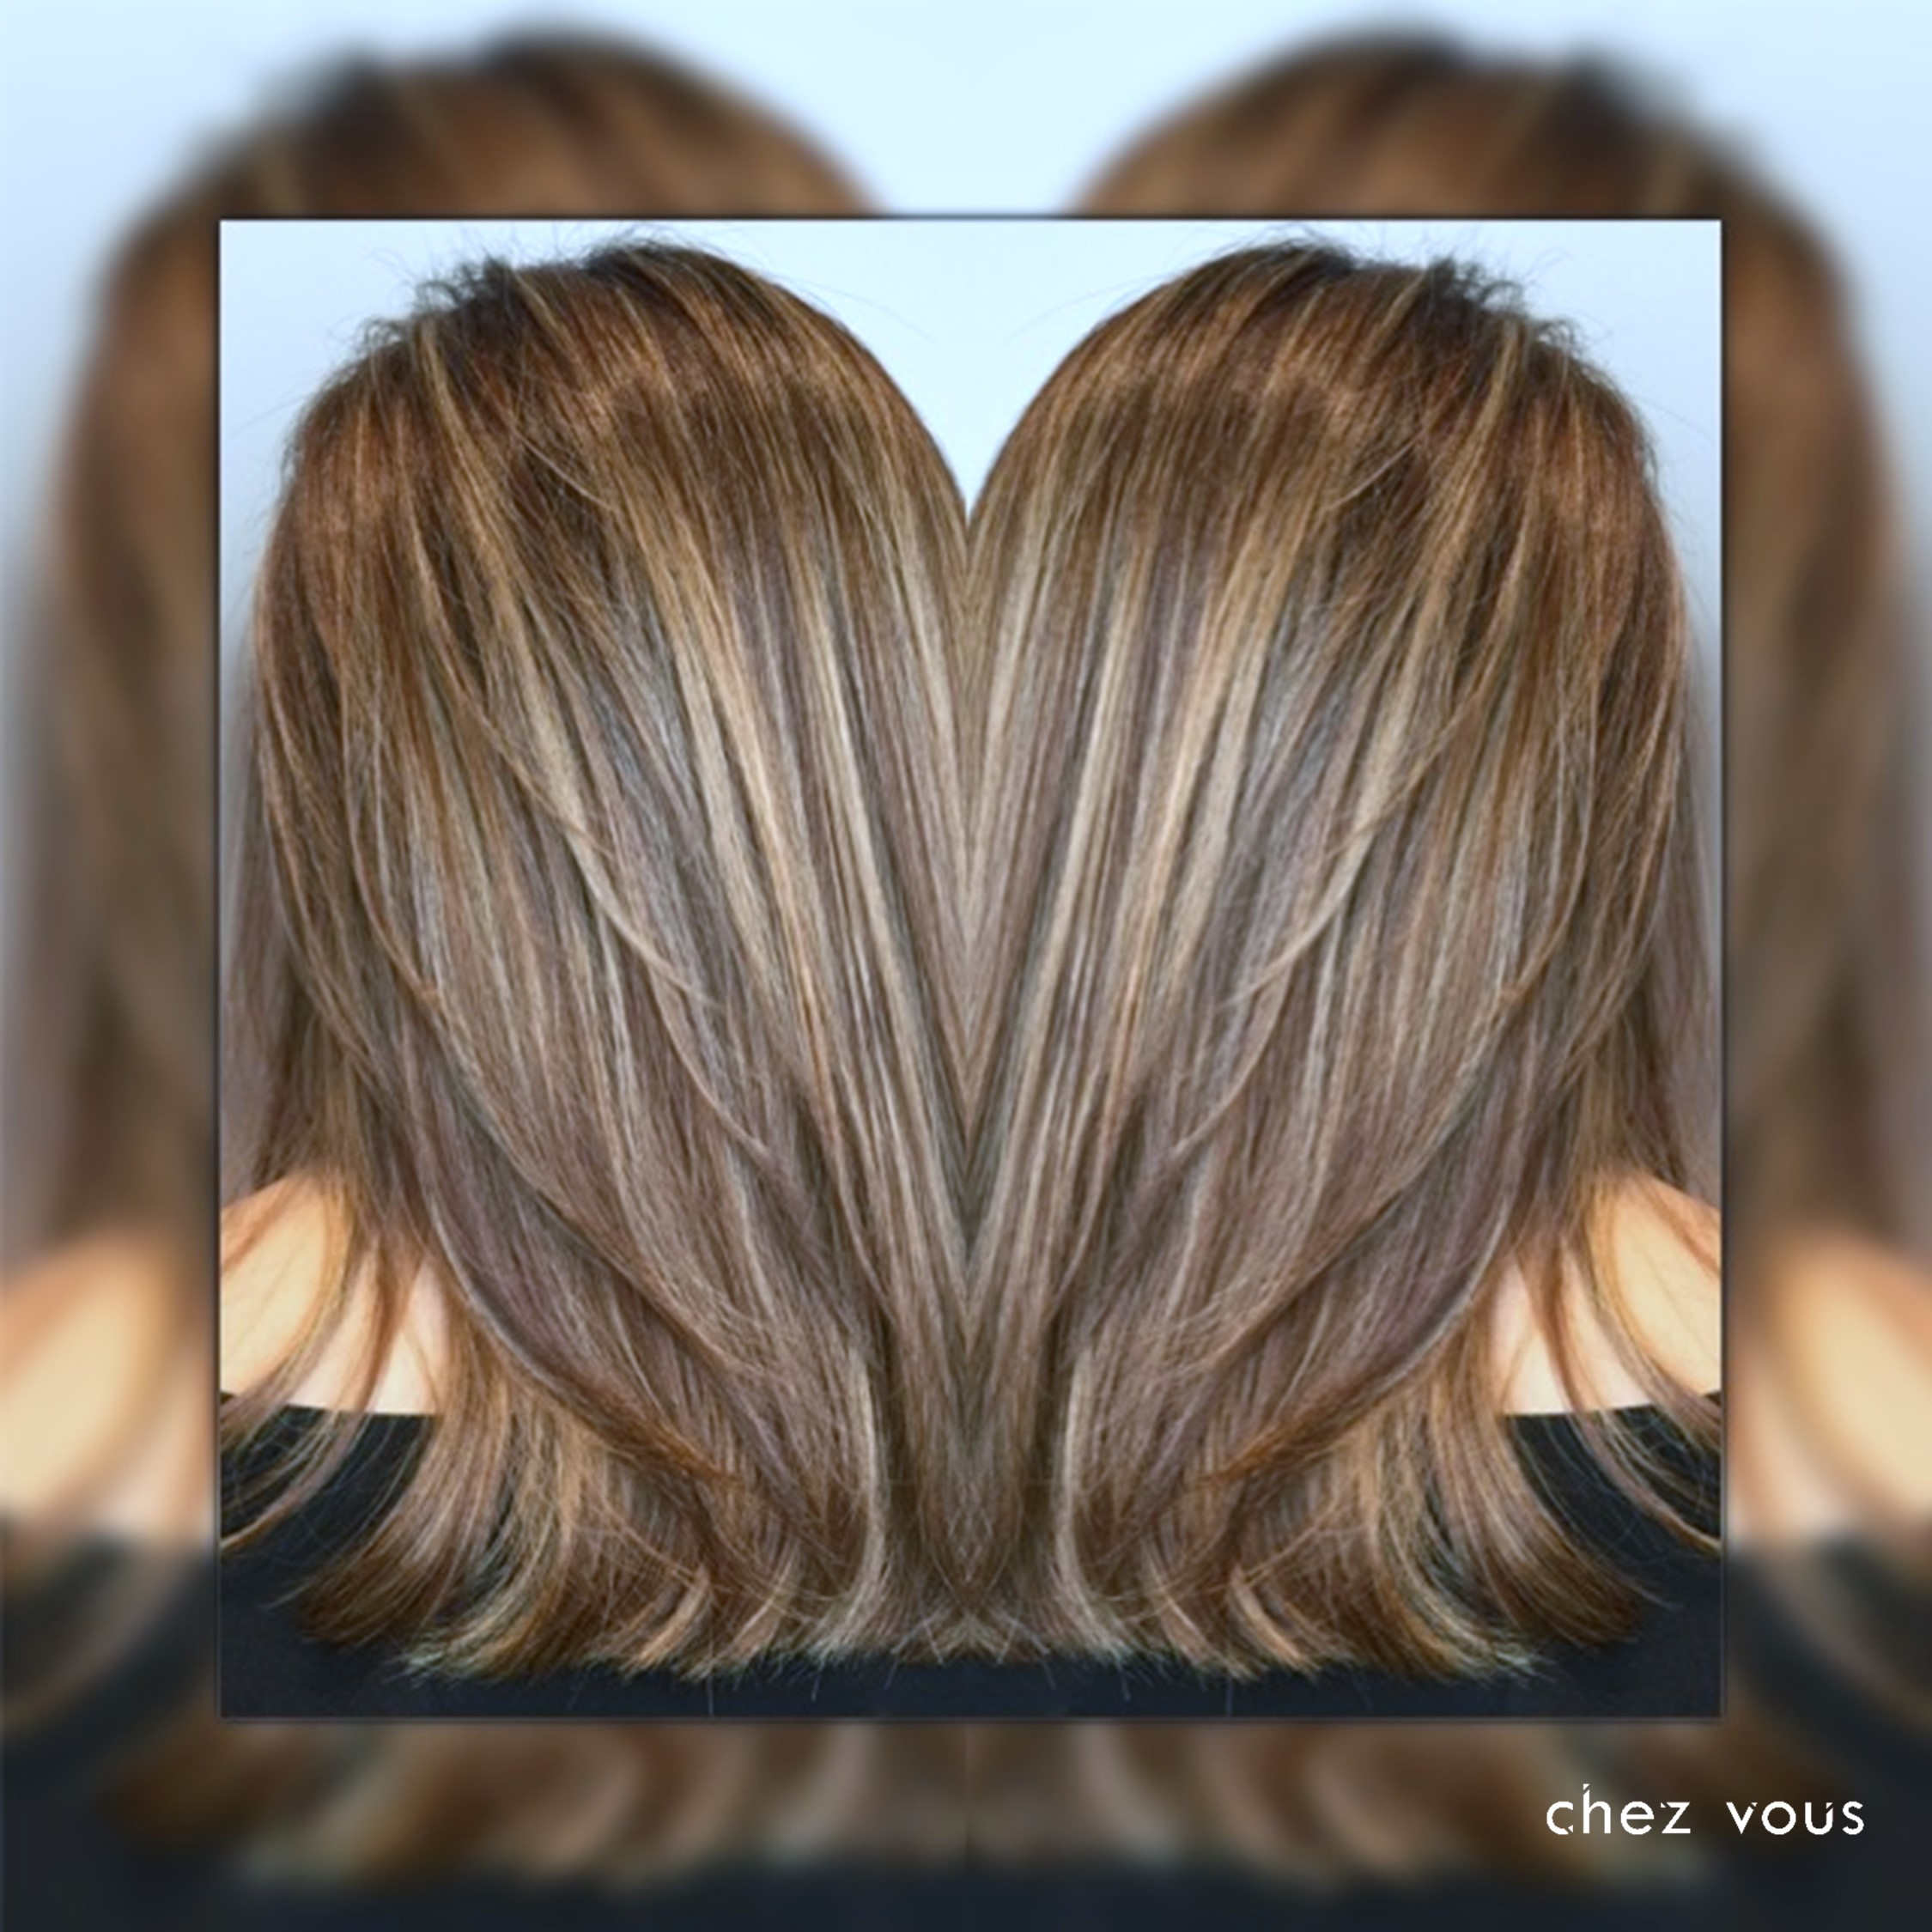 Done by Salon Director of Chez Vous: Serene Tan | Design: Babylights-infused Balayage